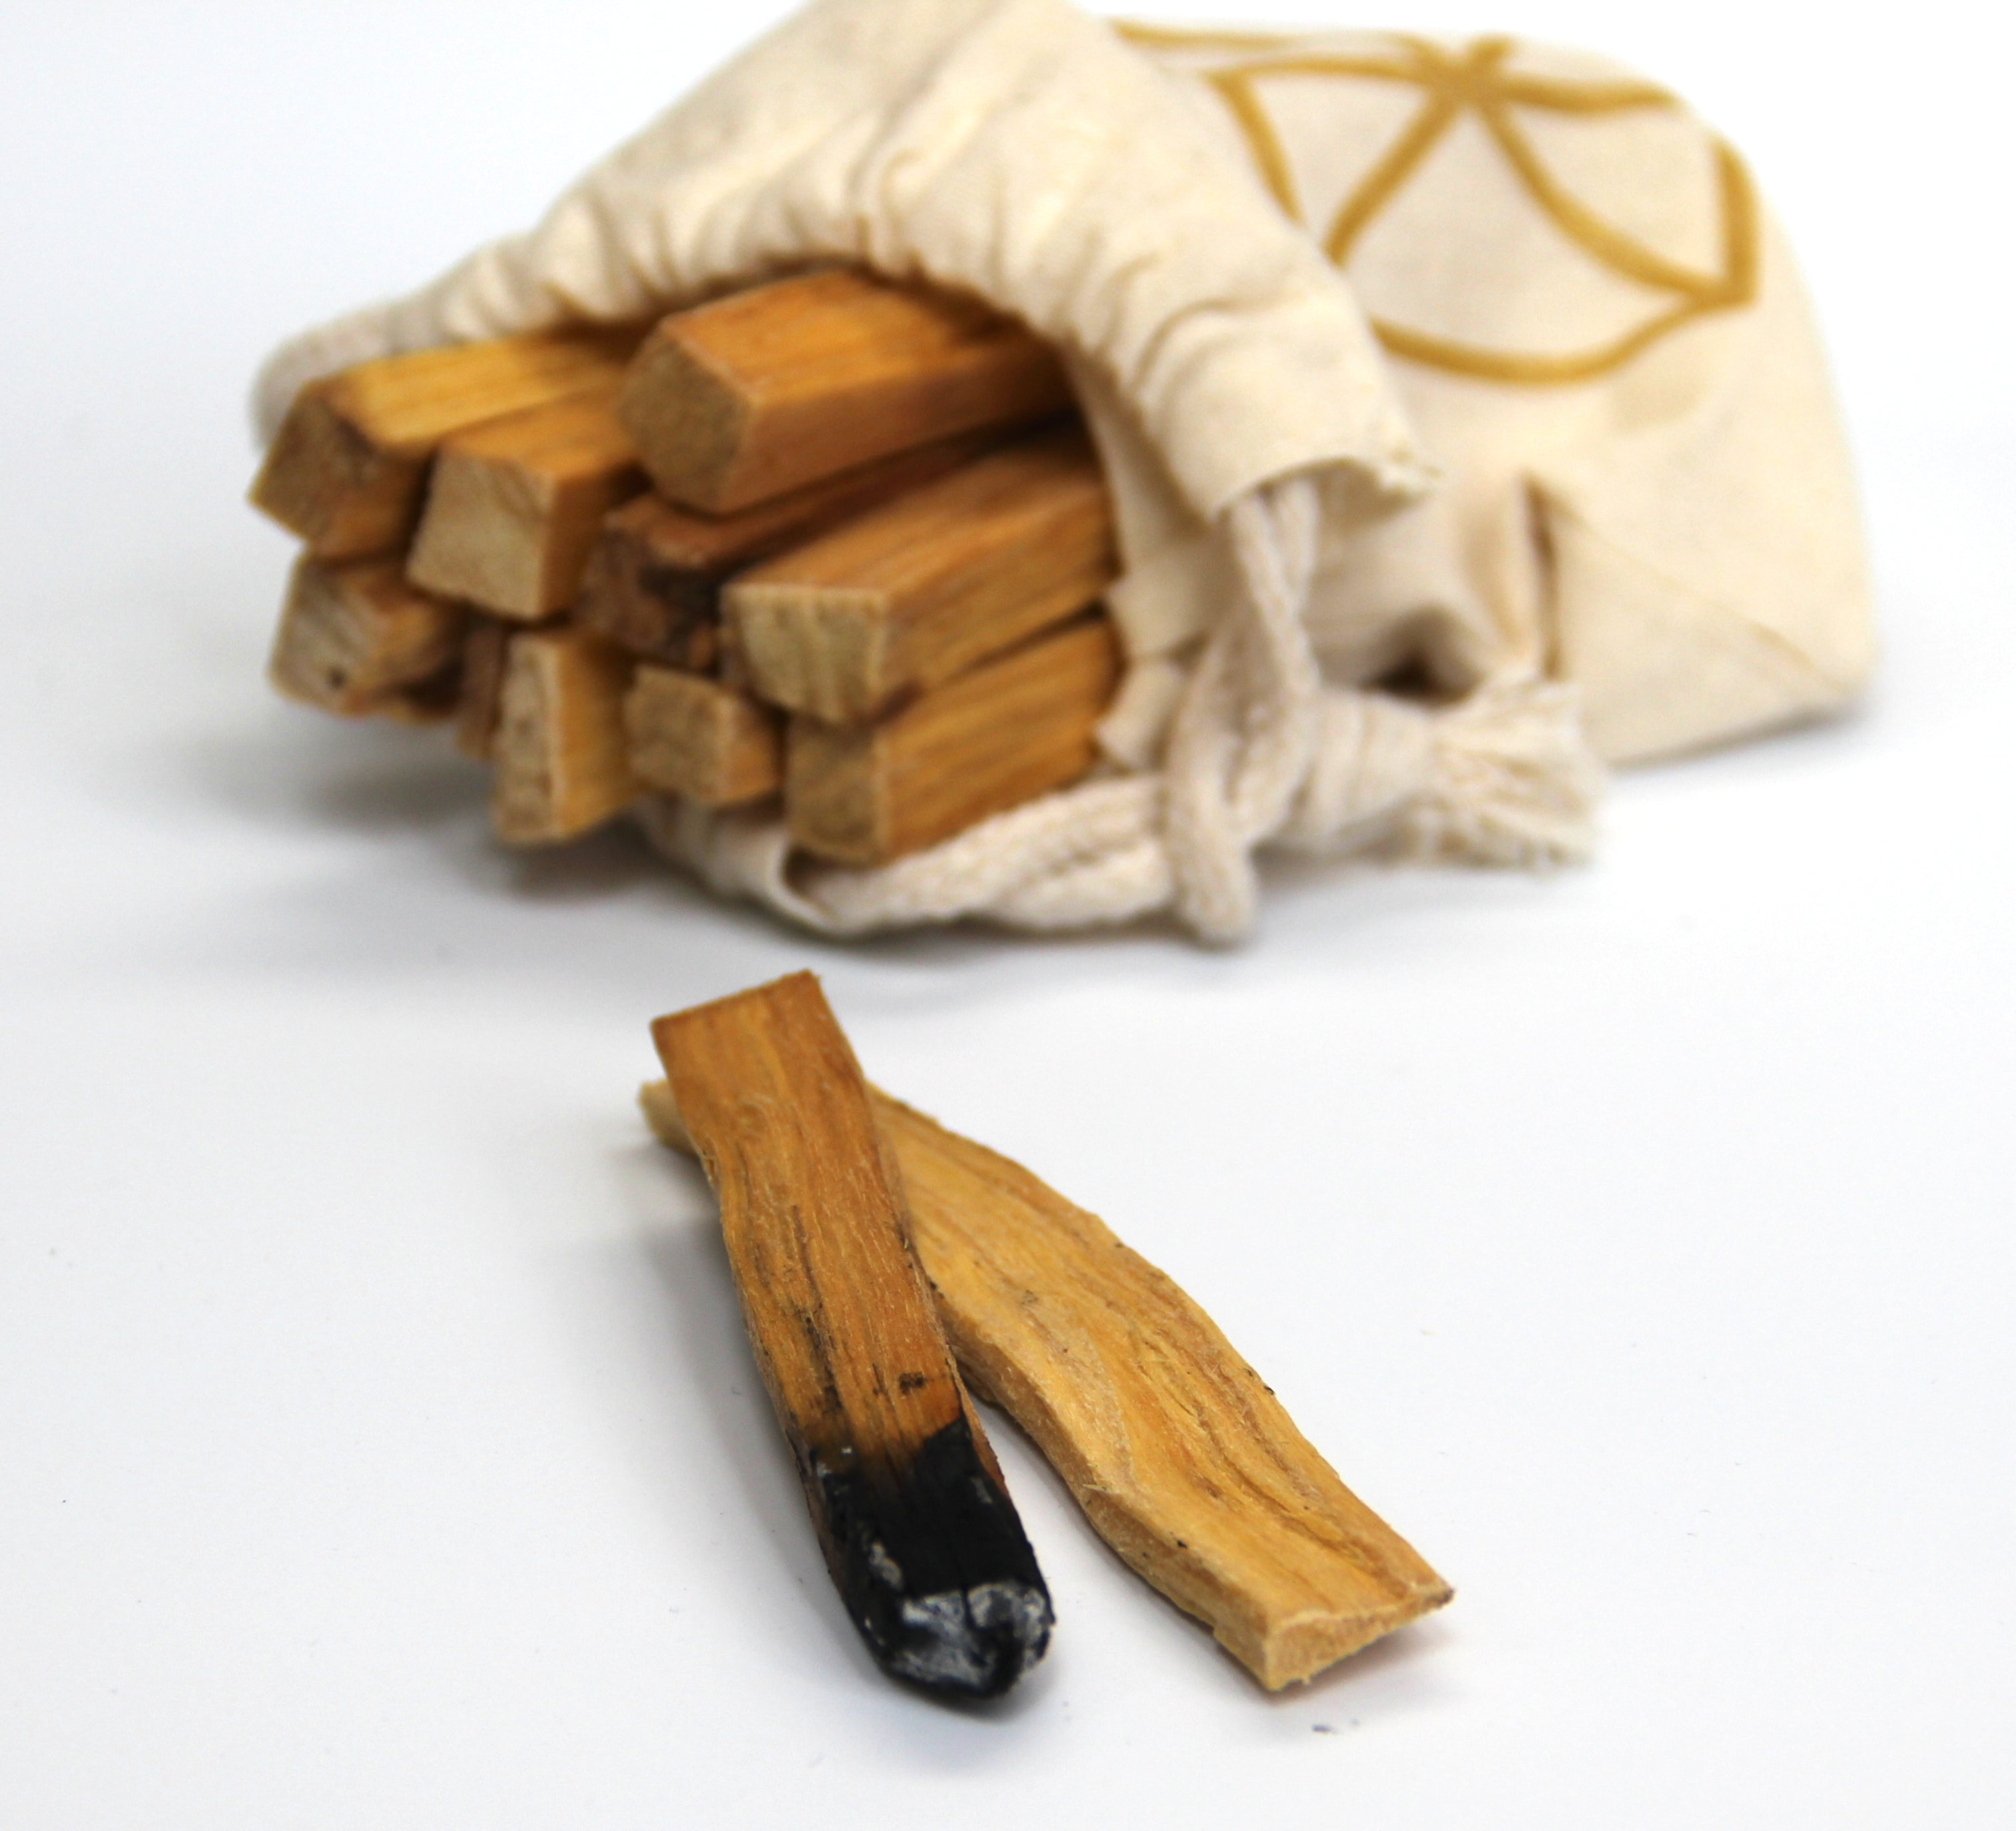 Morphologically Palo Santo